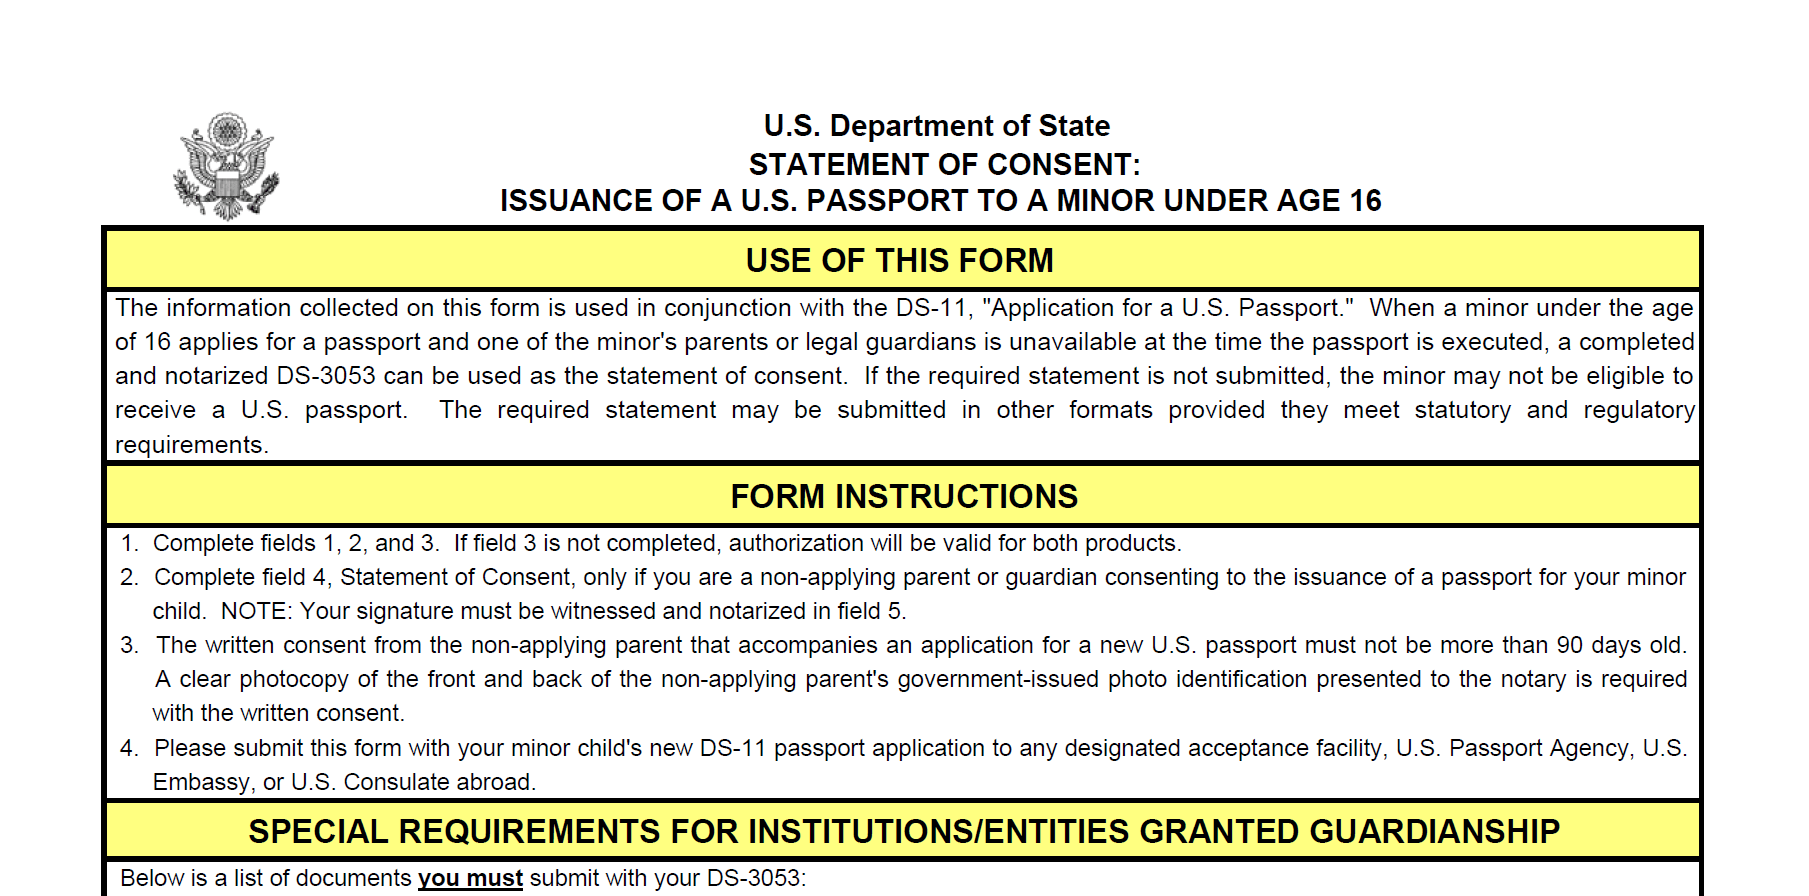 Form DS-3053: Statement of Consent: Issuance of a U.S. Passport to a Minor Under Age 16